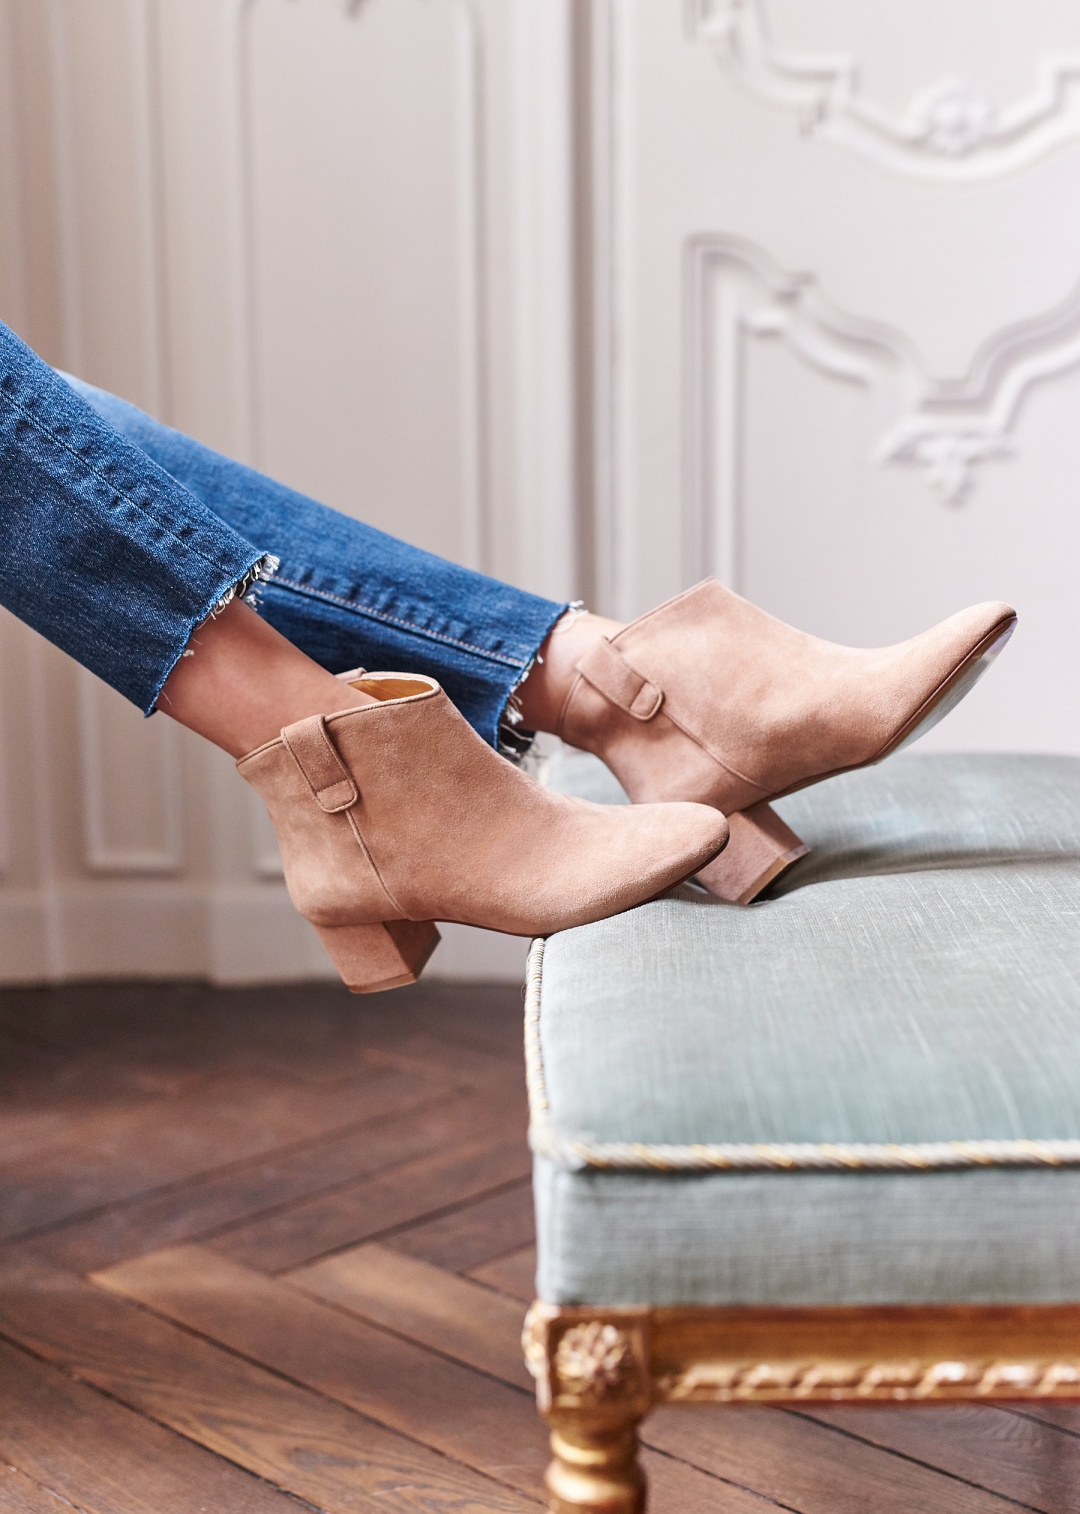 SEZANE Jude Boots  Jude, or low-cut boots full of Parisian style, is available in a black and gold version, with the highlight being the tabs that allow you to put them on and take them off with ease.